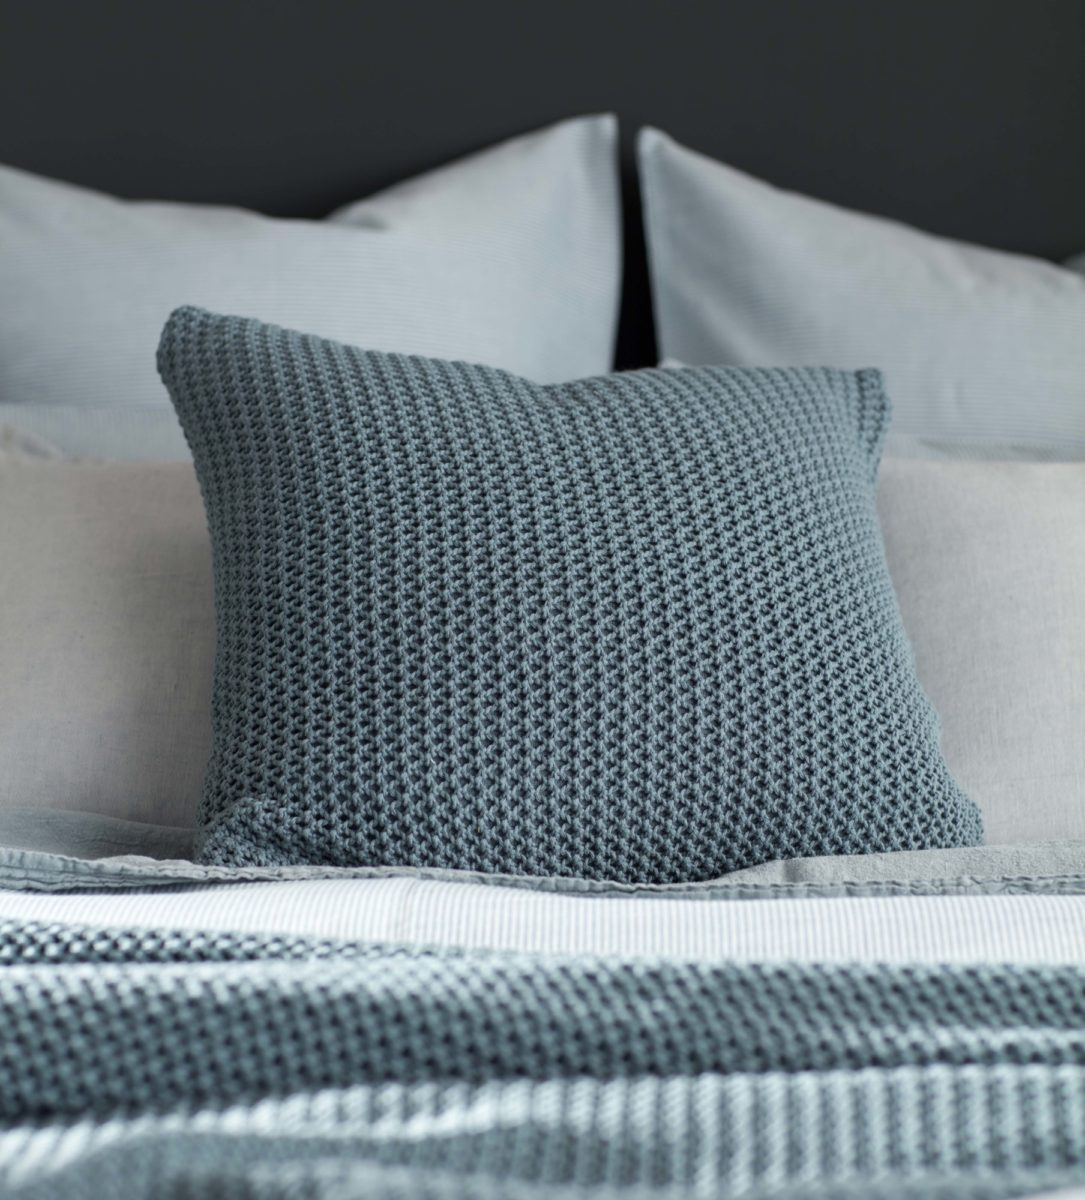 Pillows, pillow covers and cushions are